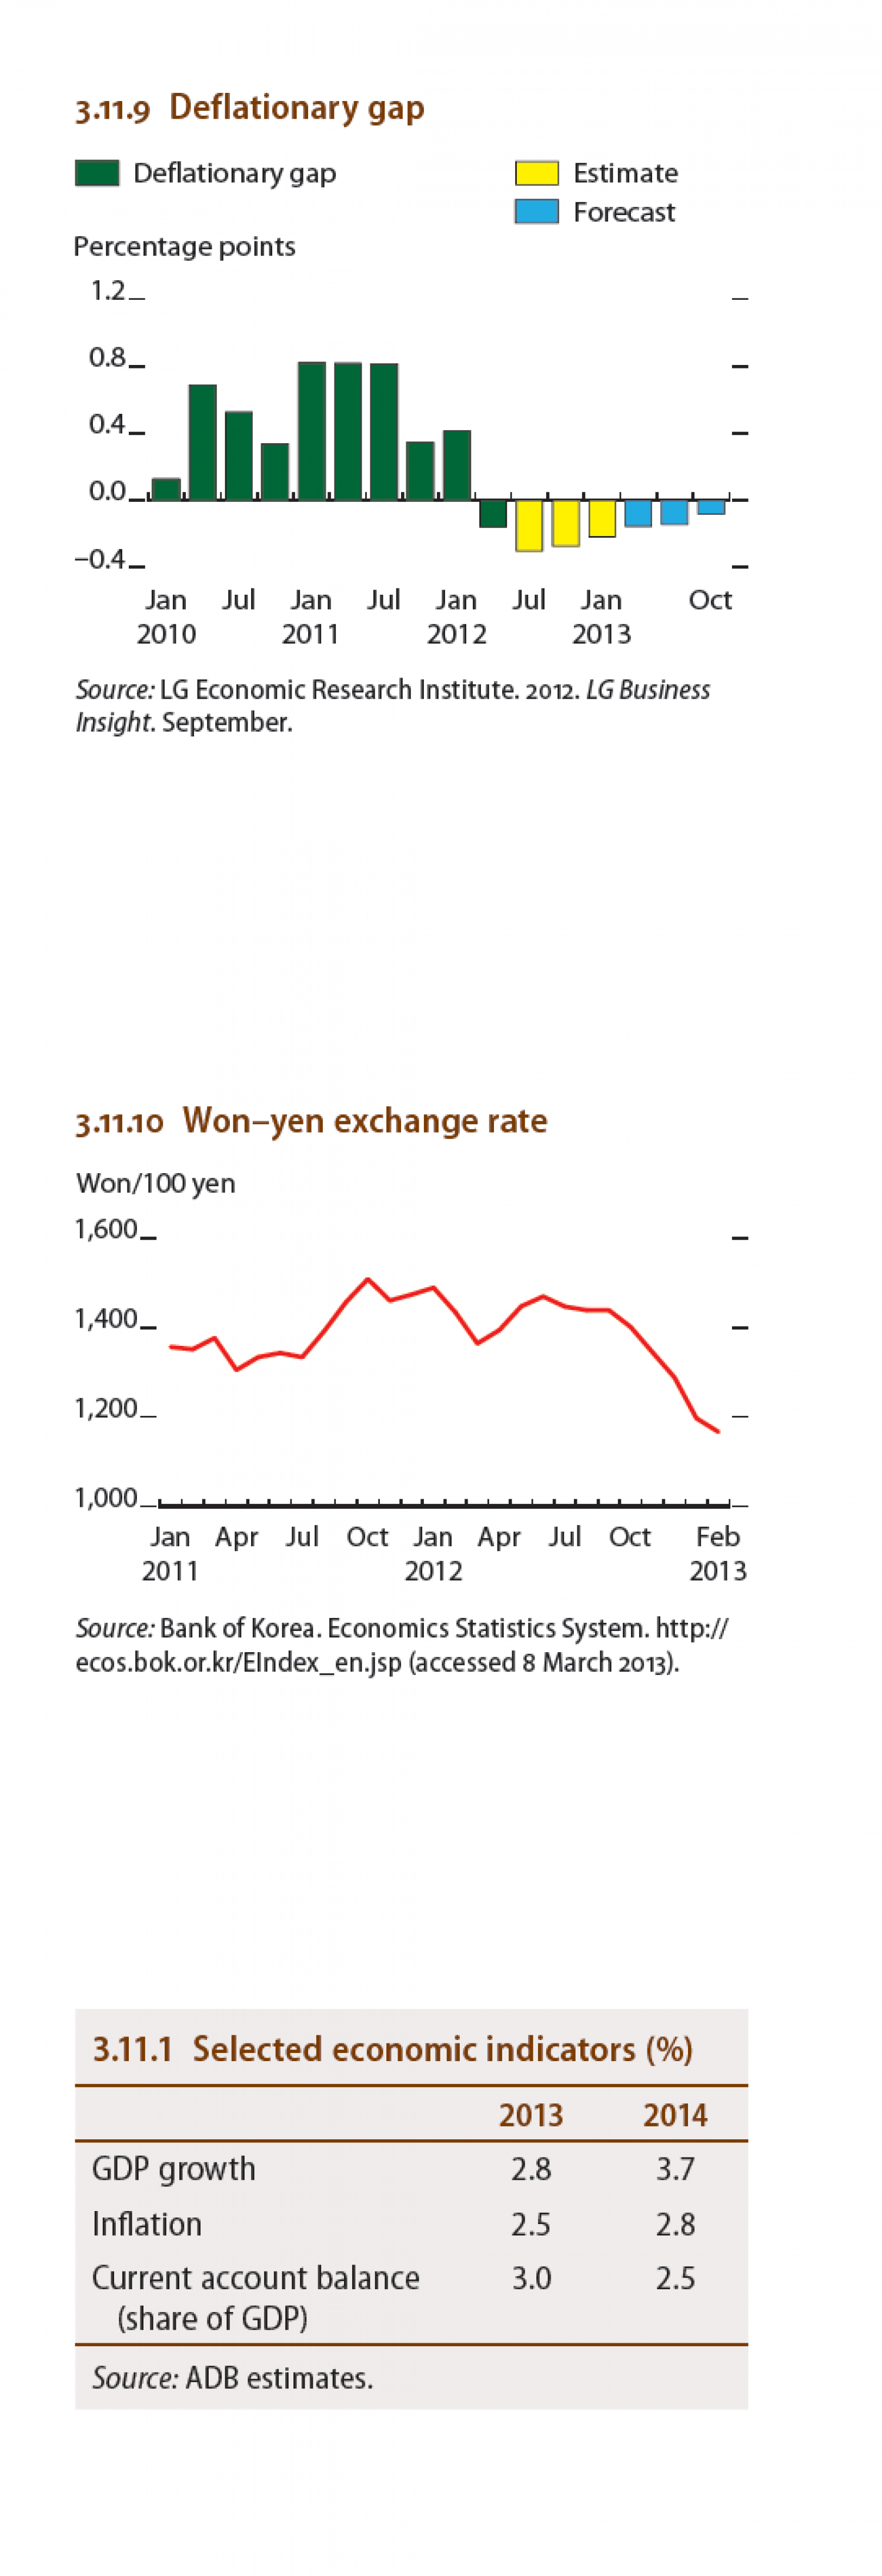 Republic of Korea : Won-Yen exchange rate, Deflationary gap, Selected economic indicators Infographic